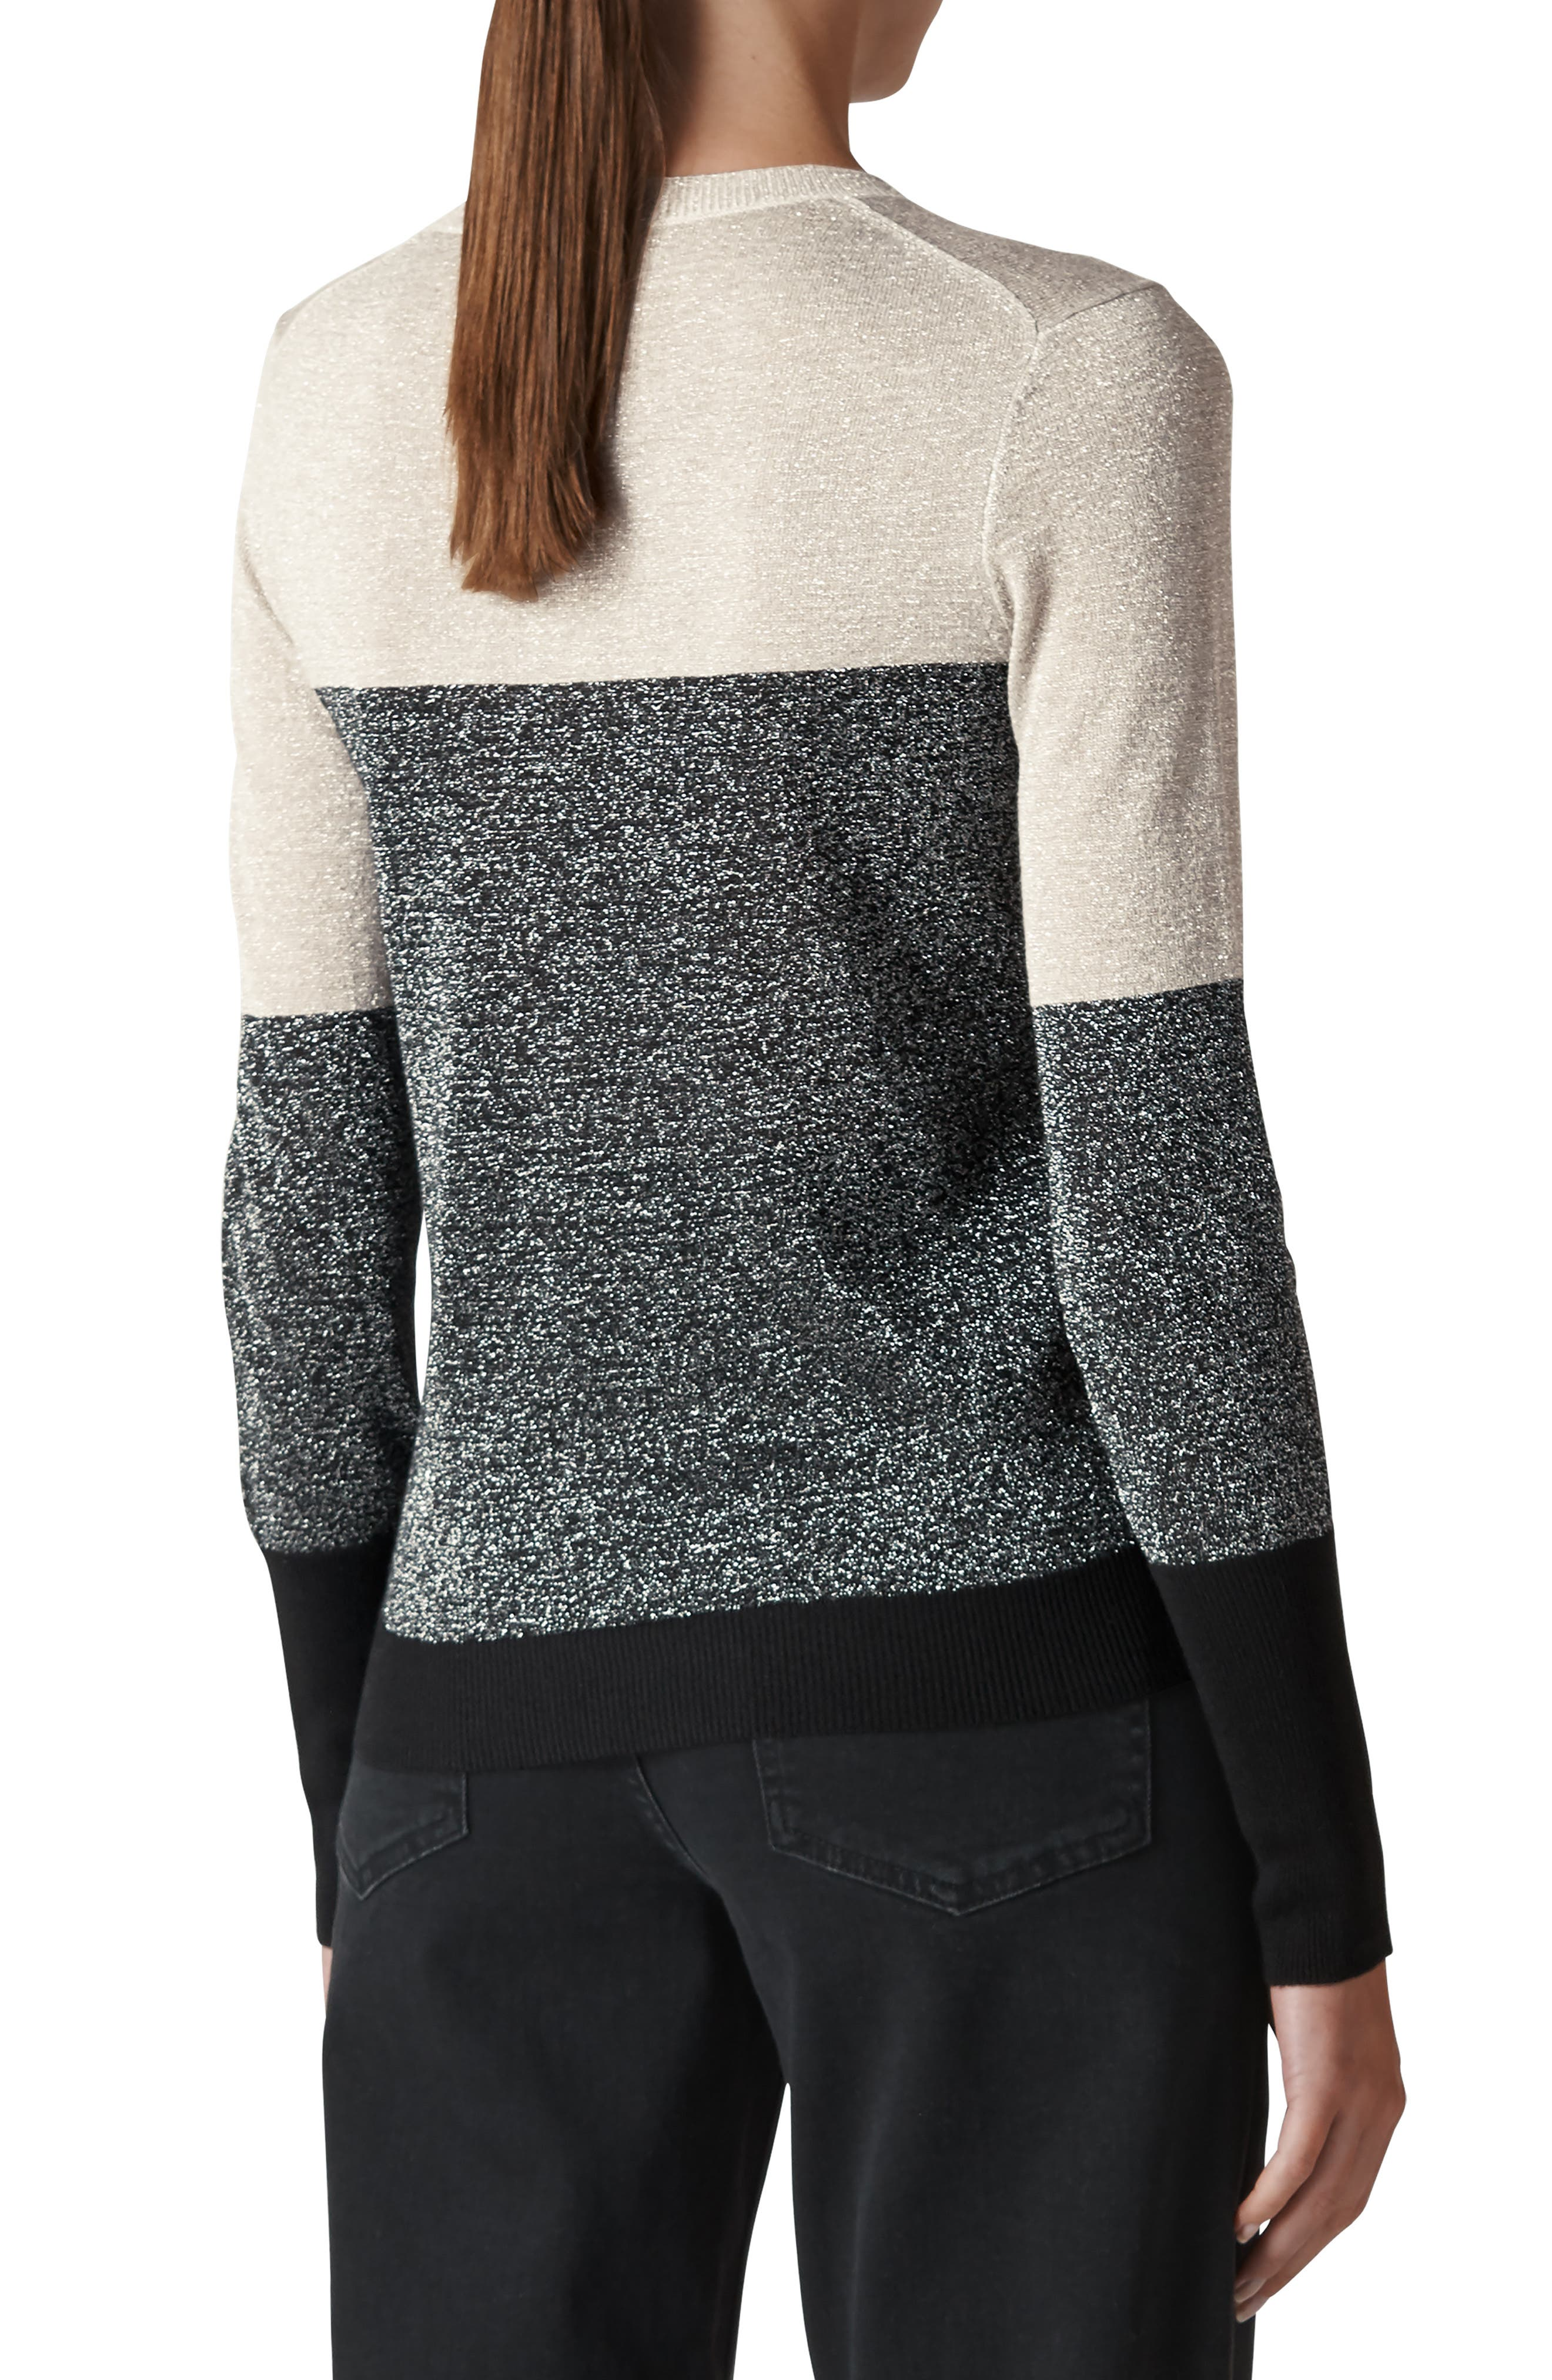 WHISTLES,                             Colorblock Sparkle Sweater,                             Alternate thumbnail 2, color,                             022